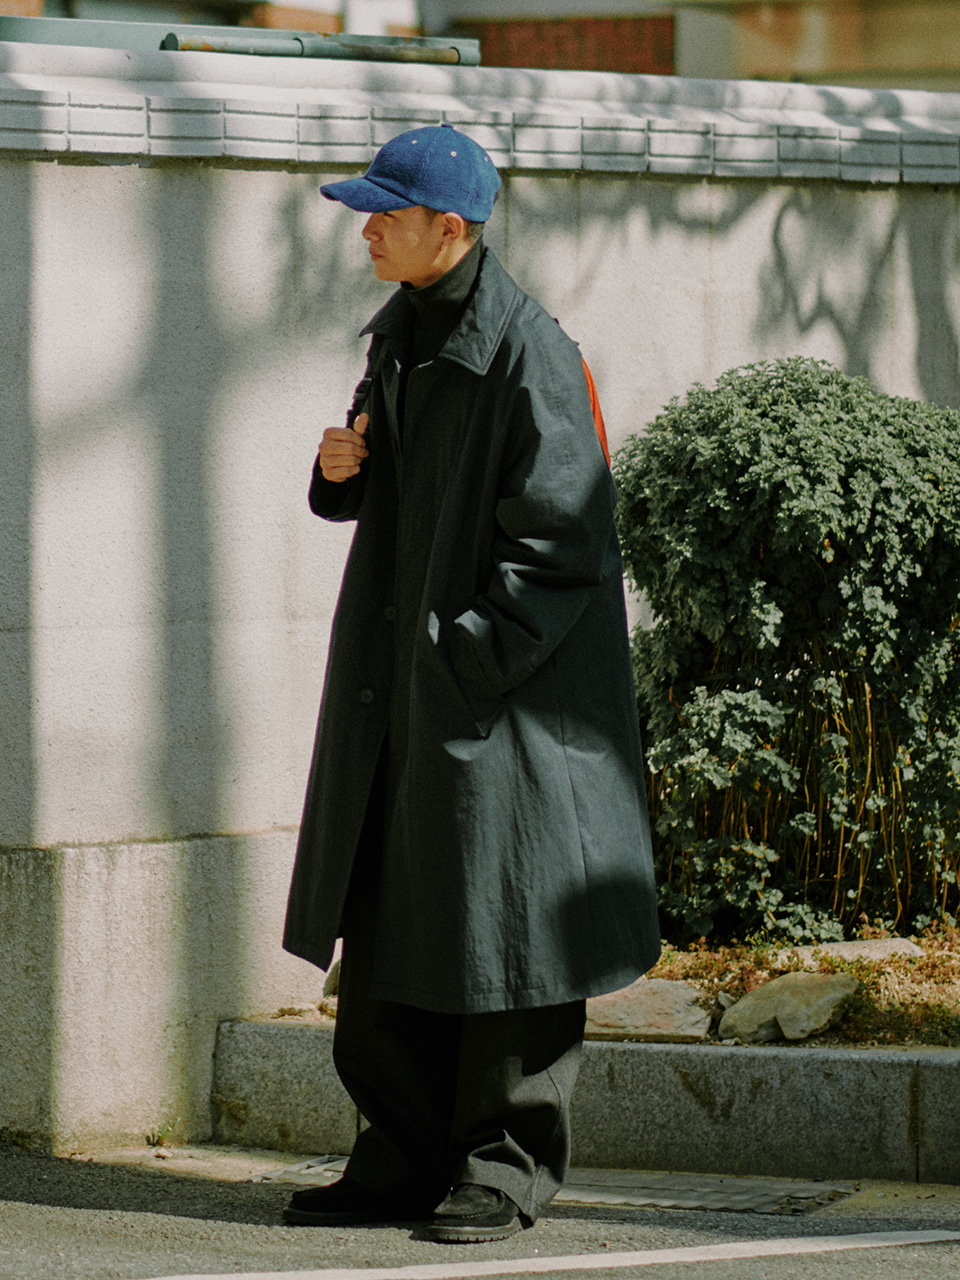 [10/30(금) 예약배송][FW20] Cotton Padded Balmacaan Coat(Navy) 스테레오 바이널즈[10/30(금) 예약배송][FW20] Cotton Padded Balmacaan Coat(Navy)